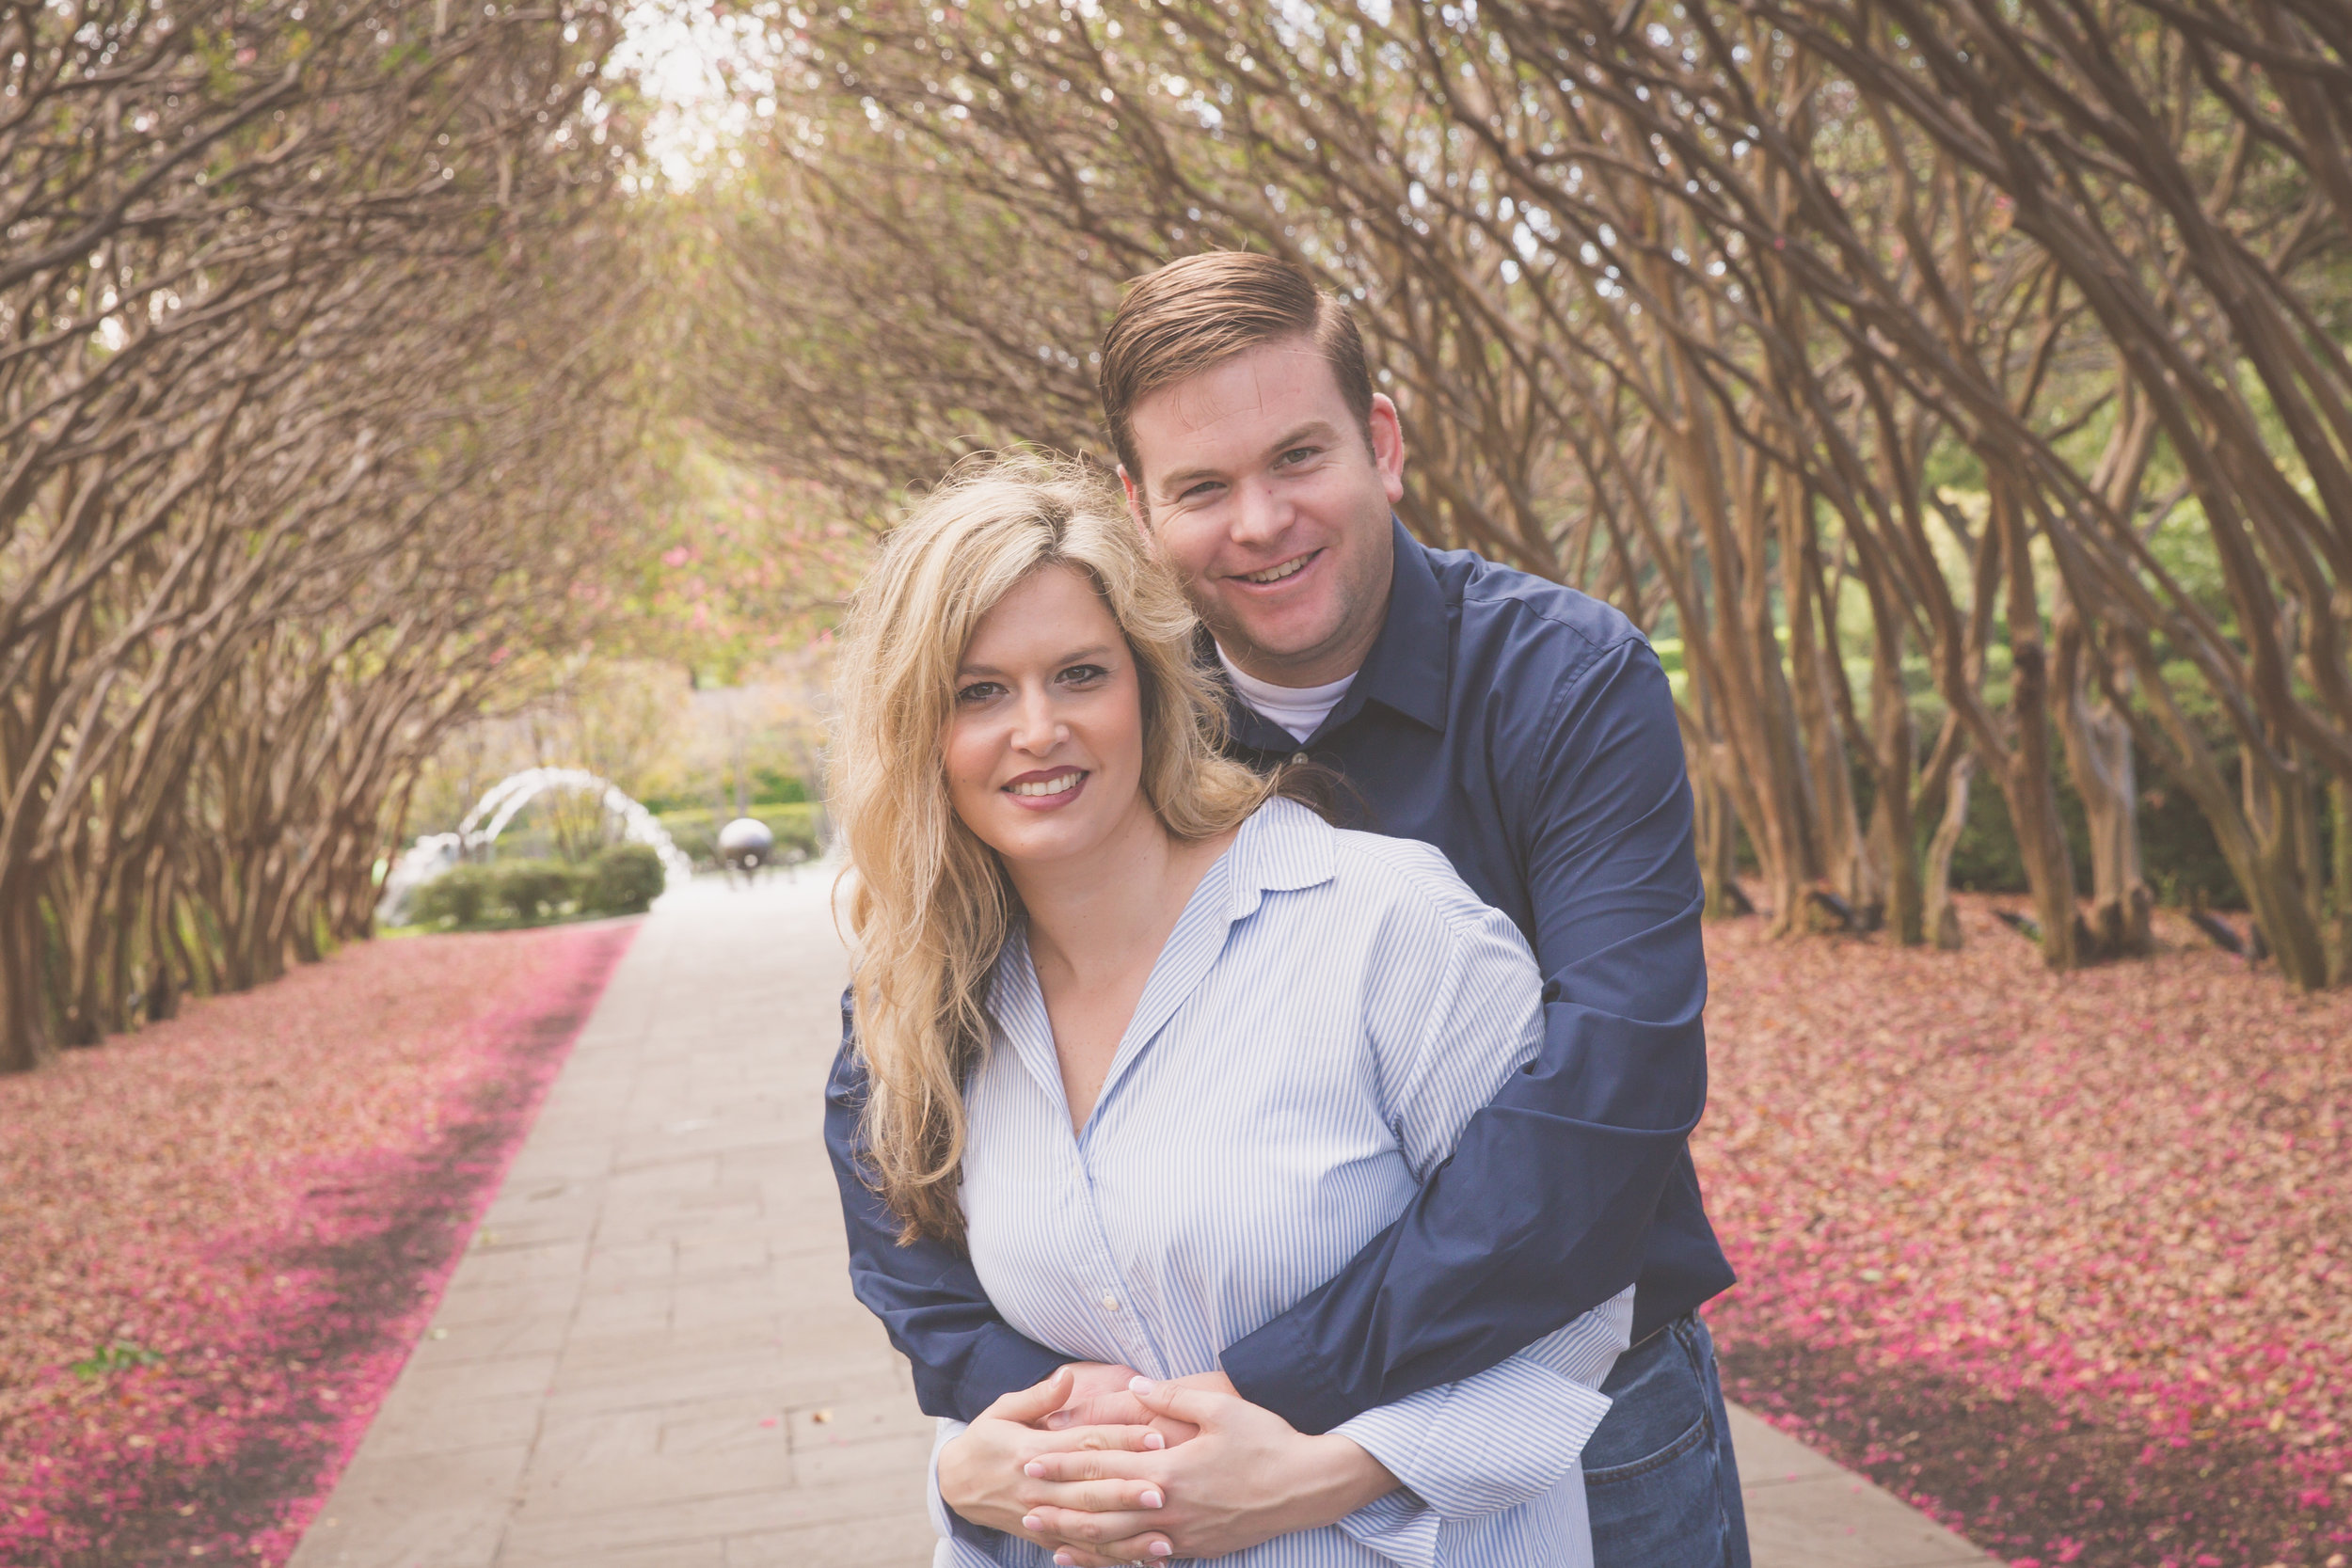 Dallas_Arboretum_Engagment_Photographers.jpg